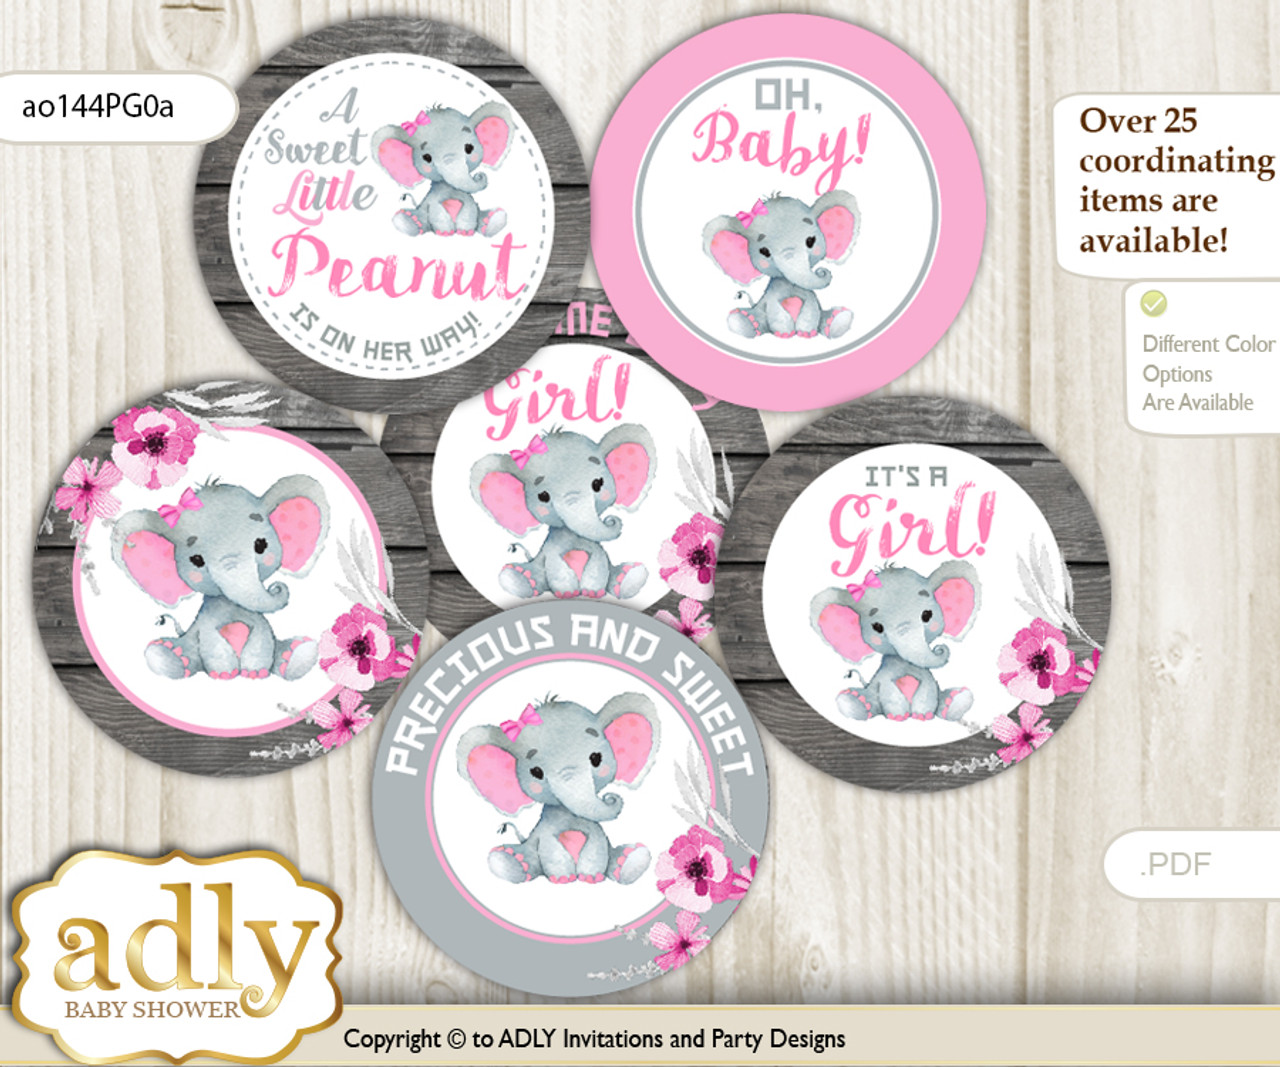 INSTANT DOWNLOAD baby girl shower cupcake toppers Ready to Pop printable 2 circle favor tags pink cute baby elephant with hearts